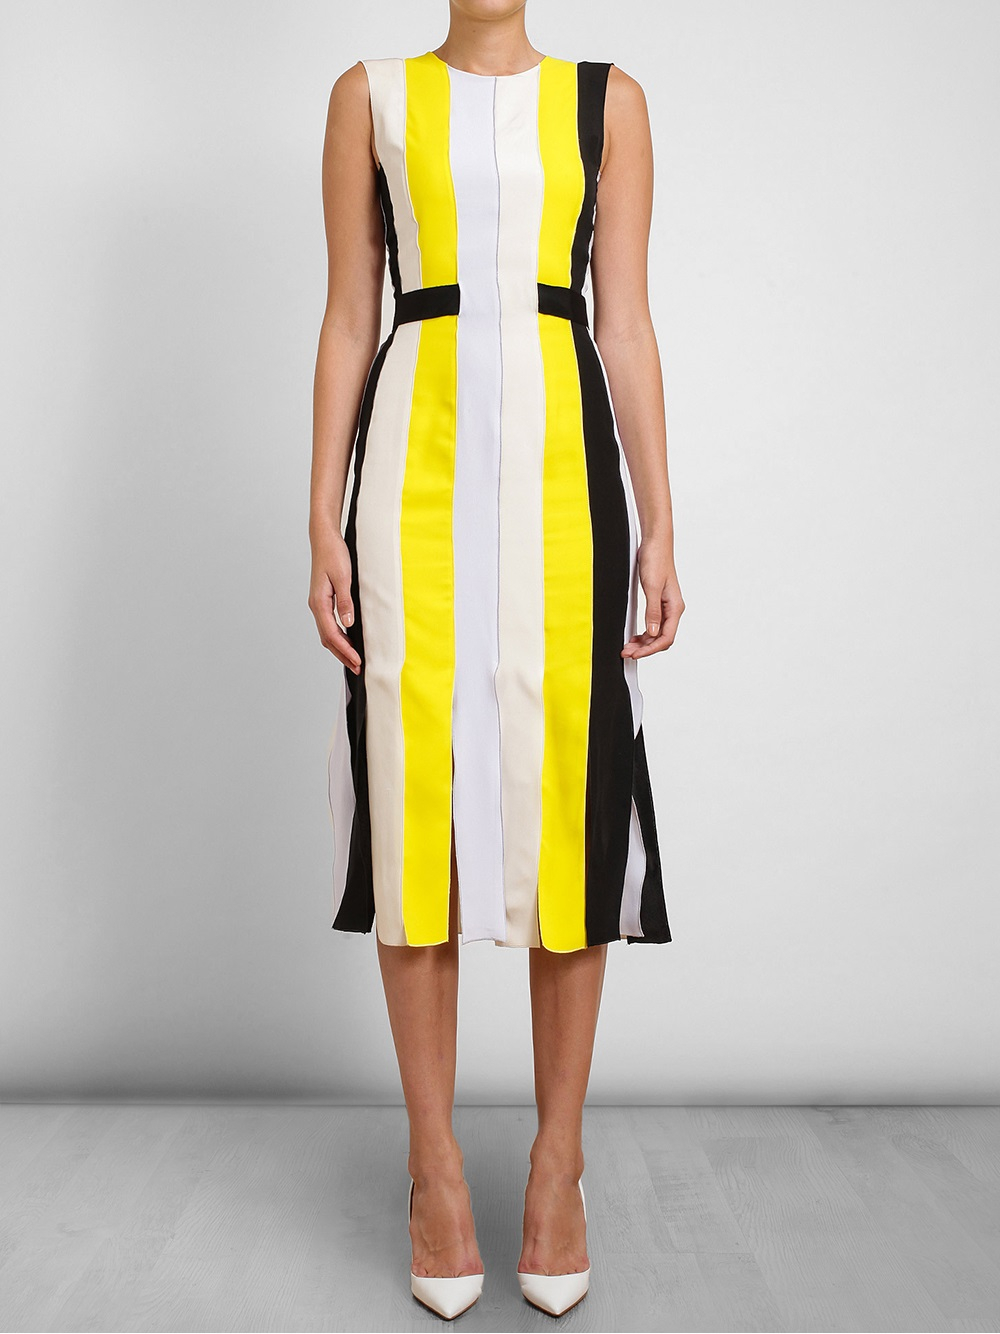 Being-mary-jane-roksanda-ilincic-yellow-wyatt-pleated-crepe-dress-being mary-jane-striped-dress-season-two-episode-six-2